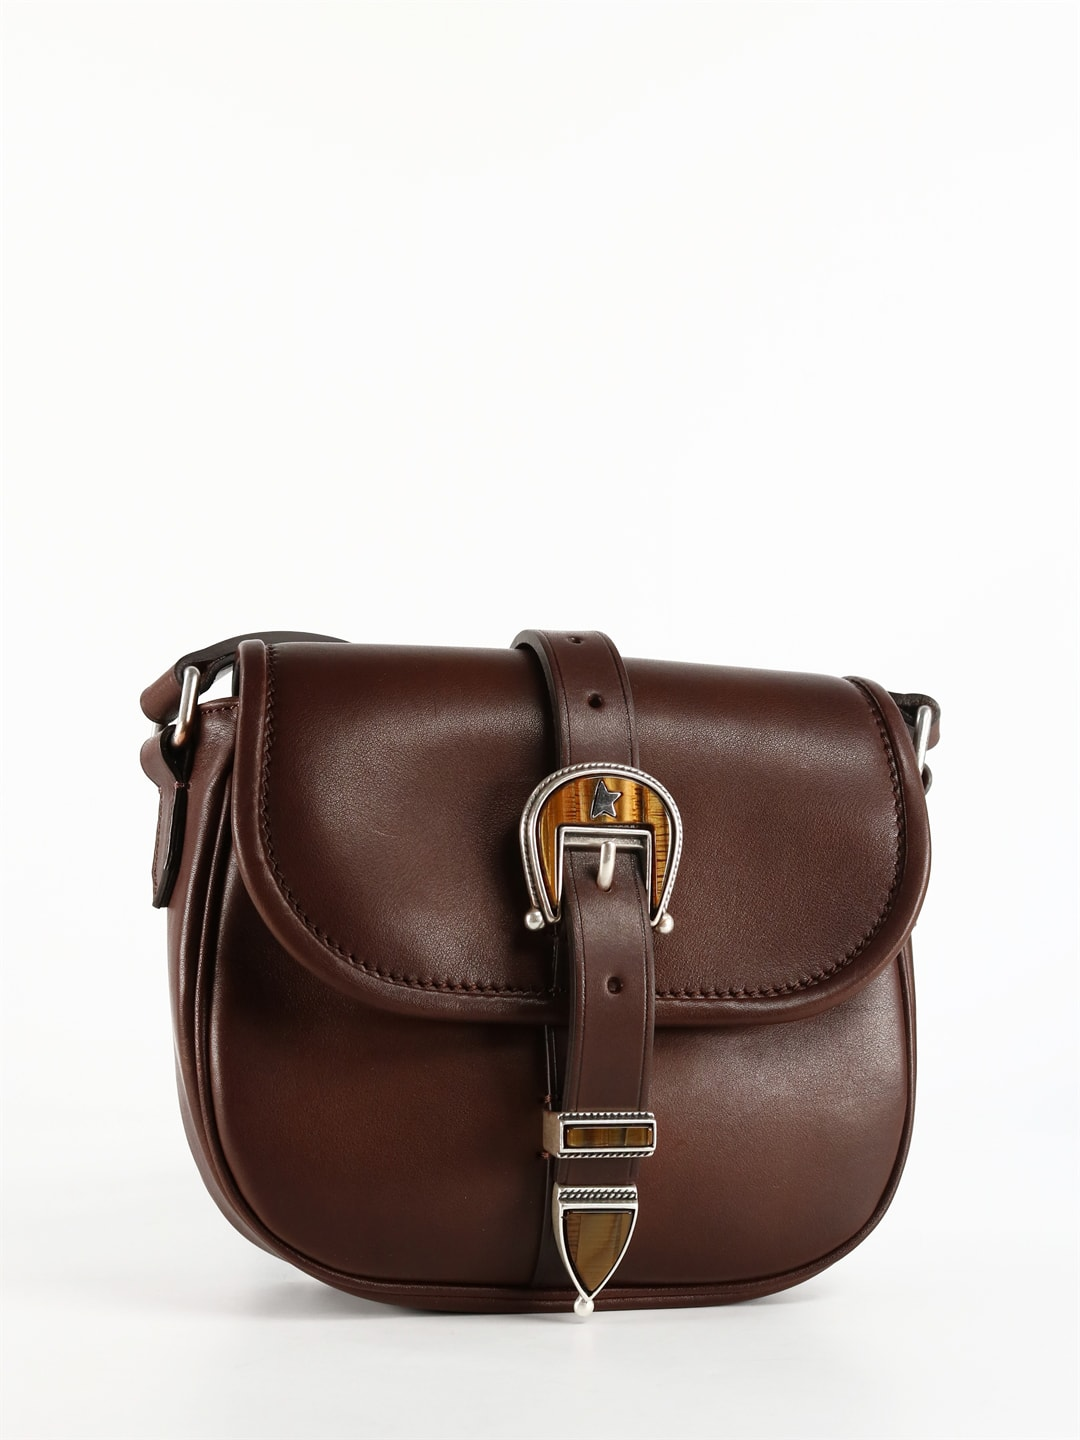 Rodeo bag in premium brown leather, characterized by its softness accompanied by a silky effect. Equipped with a double magnet closure that allows easy opening and closing of the bag. Adjustable shoulder strap. Front flap, adjustable buckle closure. Magnet for opening and closing. Dimensions: 20 x 18 x 7 cmComposition: 100% Bovine Leather